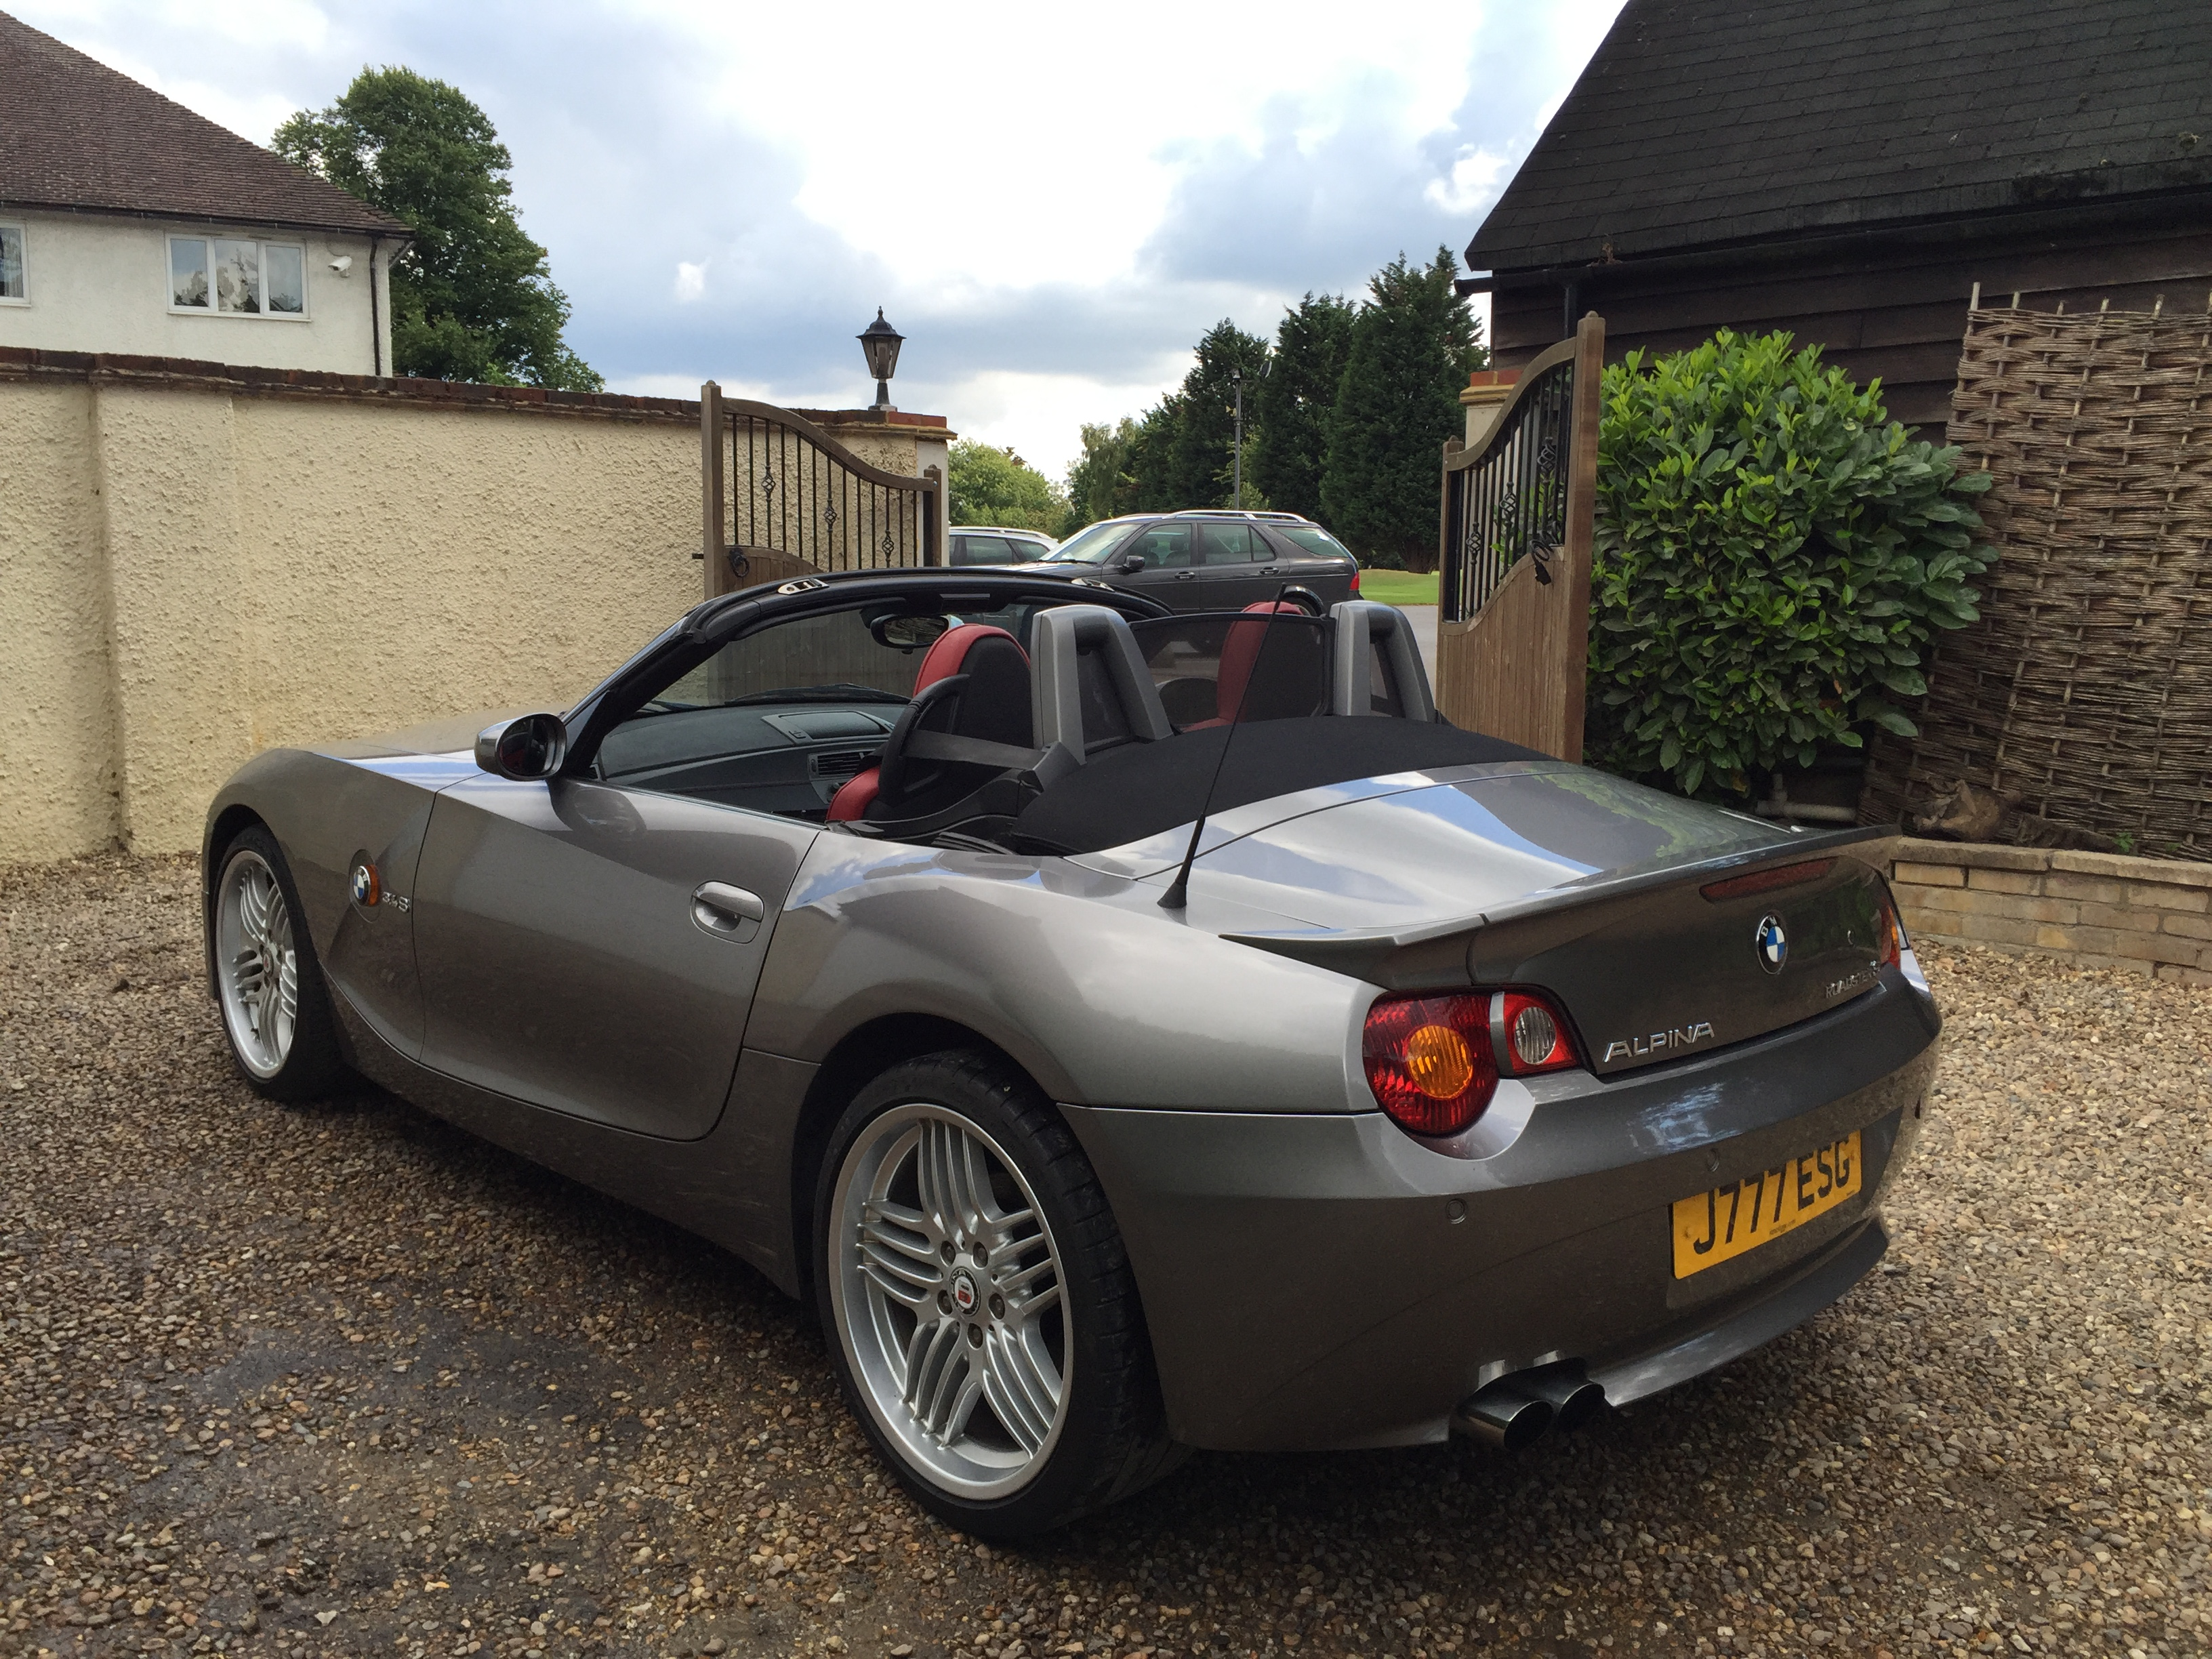 Bmw Z4 3 4s Alpina Roadster 6 Speed Manual Gs Vehicle